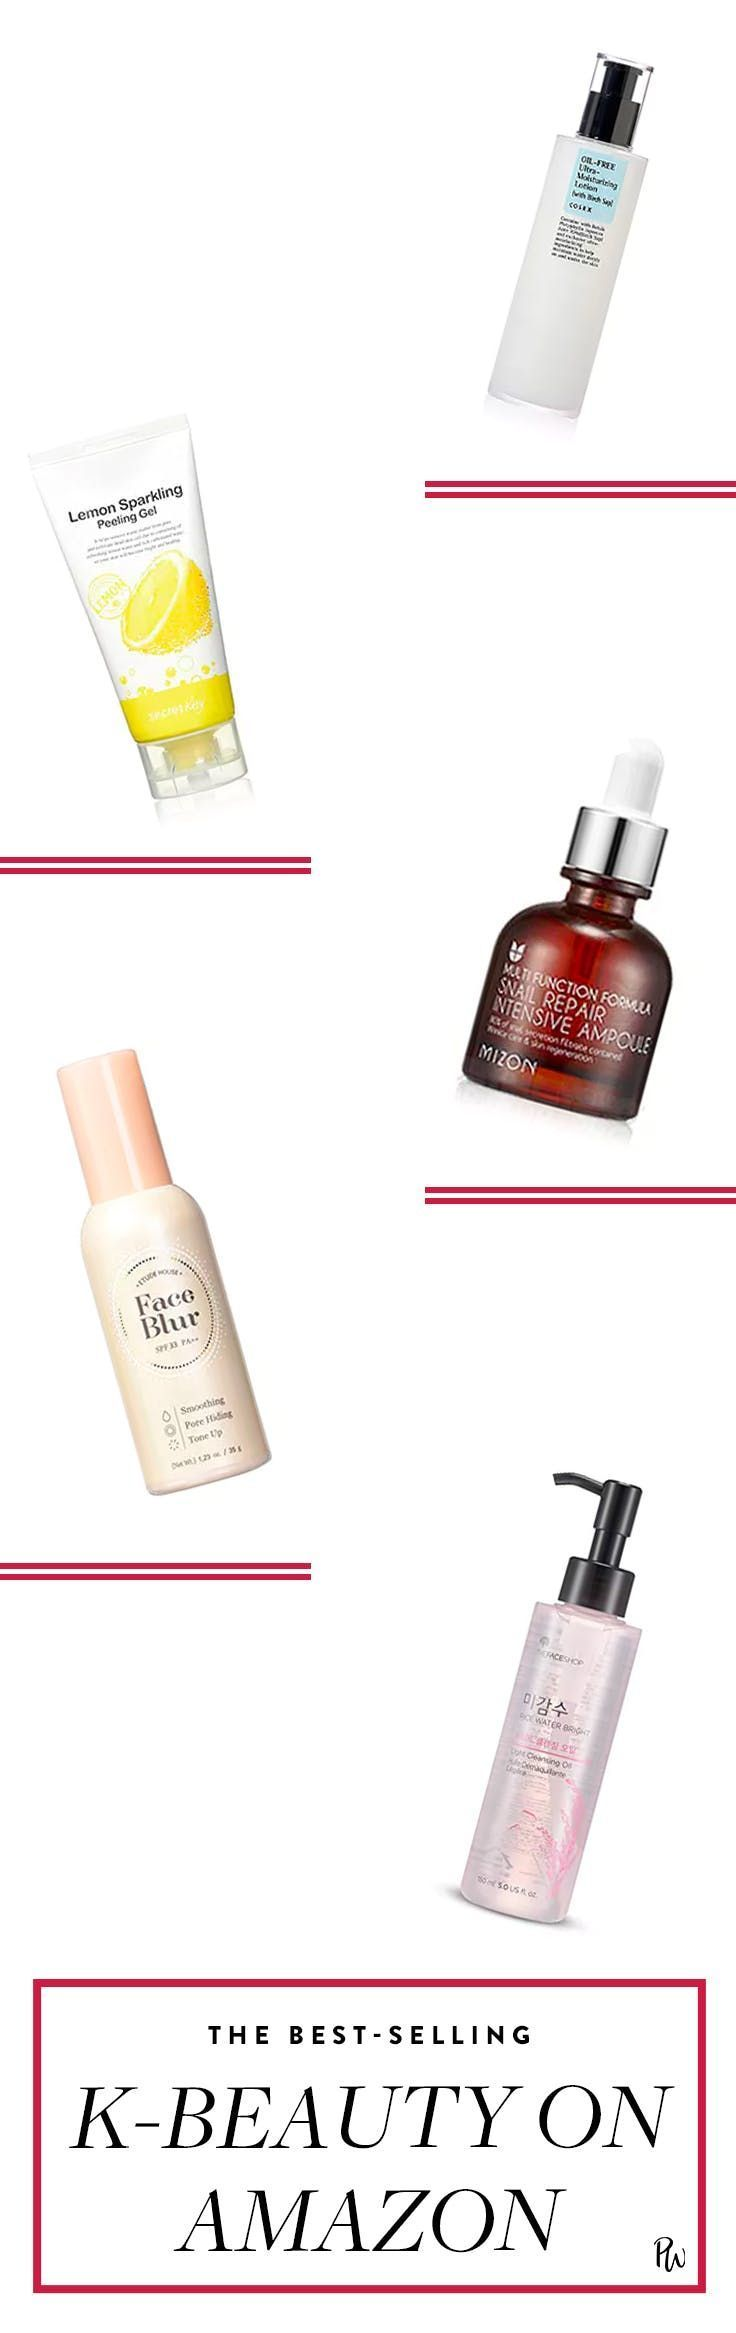 The 14 Best Selling Korean Beauty Products On Amazon Purewow Amazon Beauty Korean Skincare Shop Amazon Beauty Products Korean Beauty Beauty Hacks Skincare